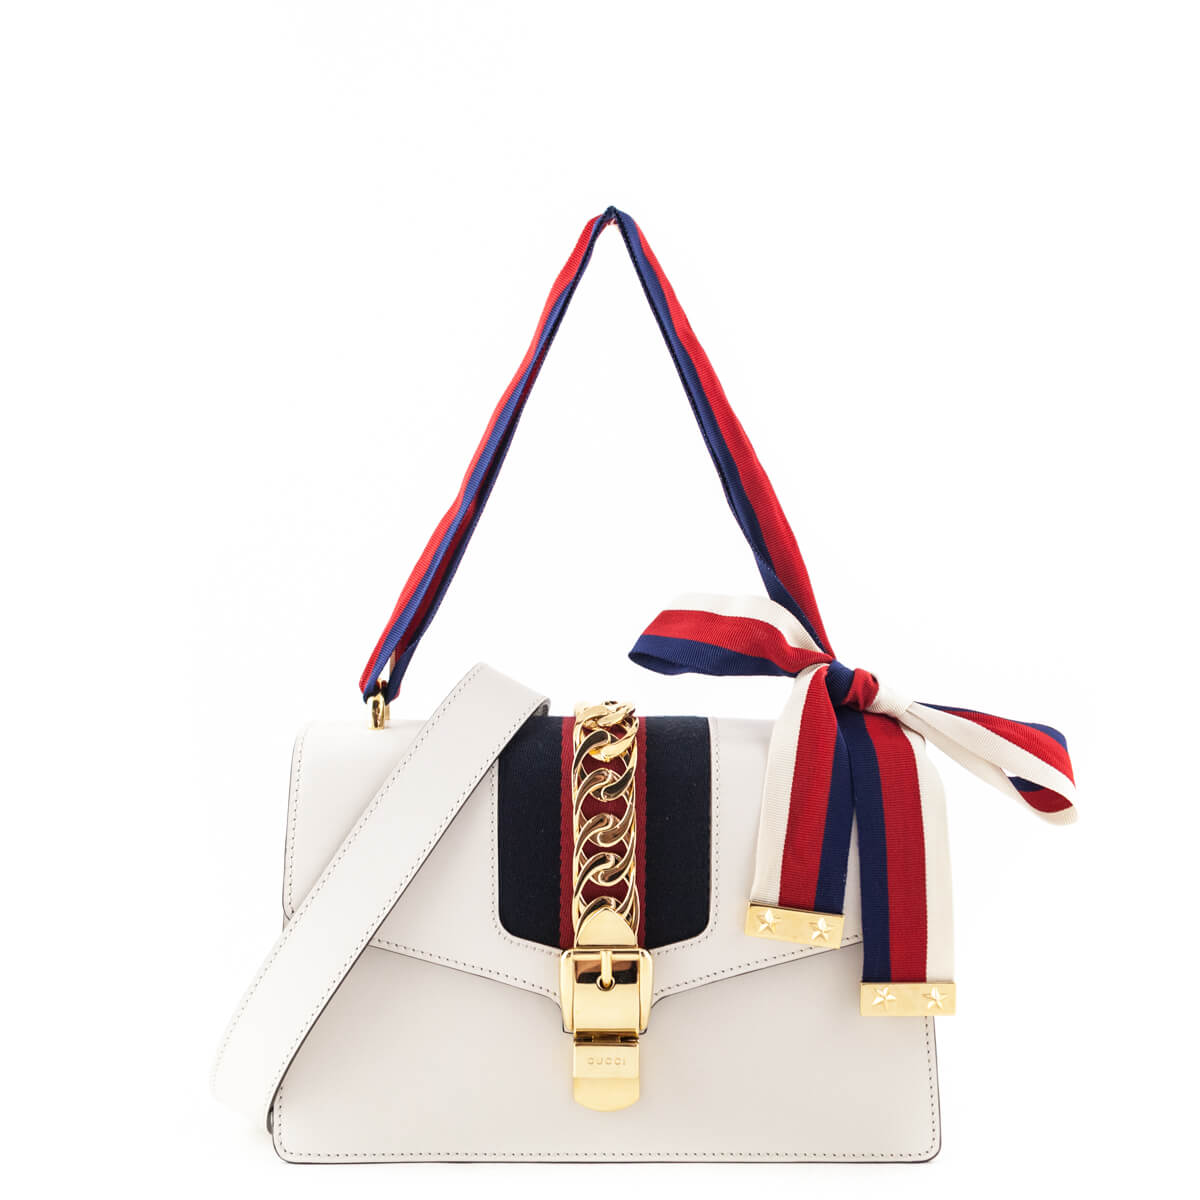 Gucci Small White Sylvie Shoulder Bag - LOVE that BAG - Preowned Authentic  Designer Handbags ... 08d90f8b7c151